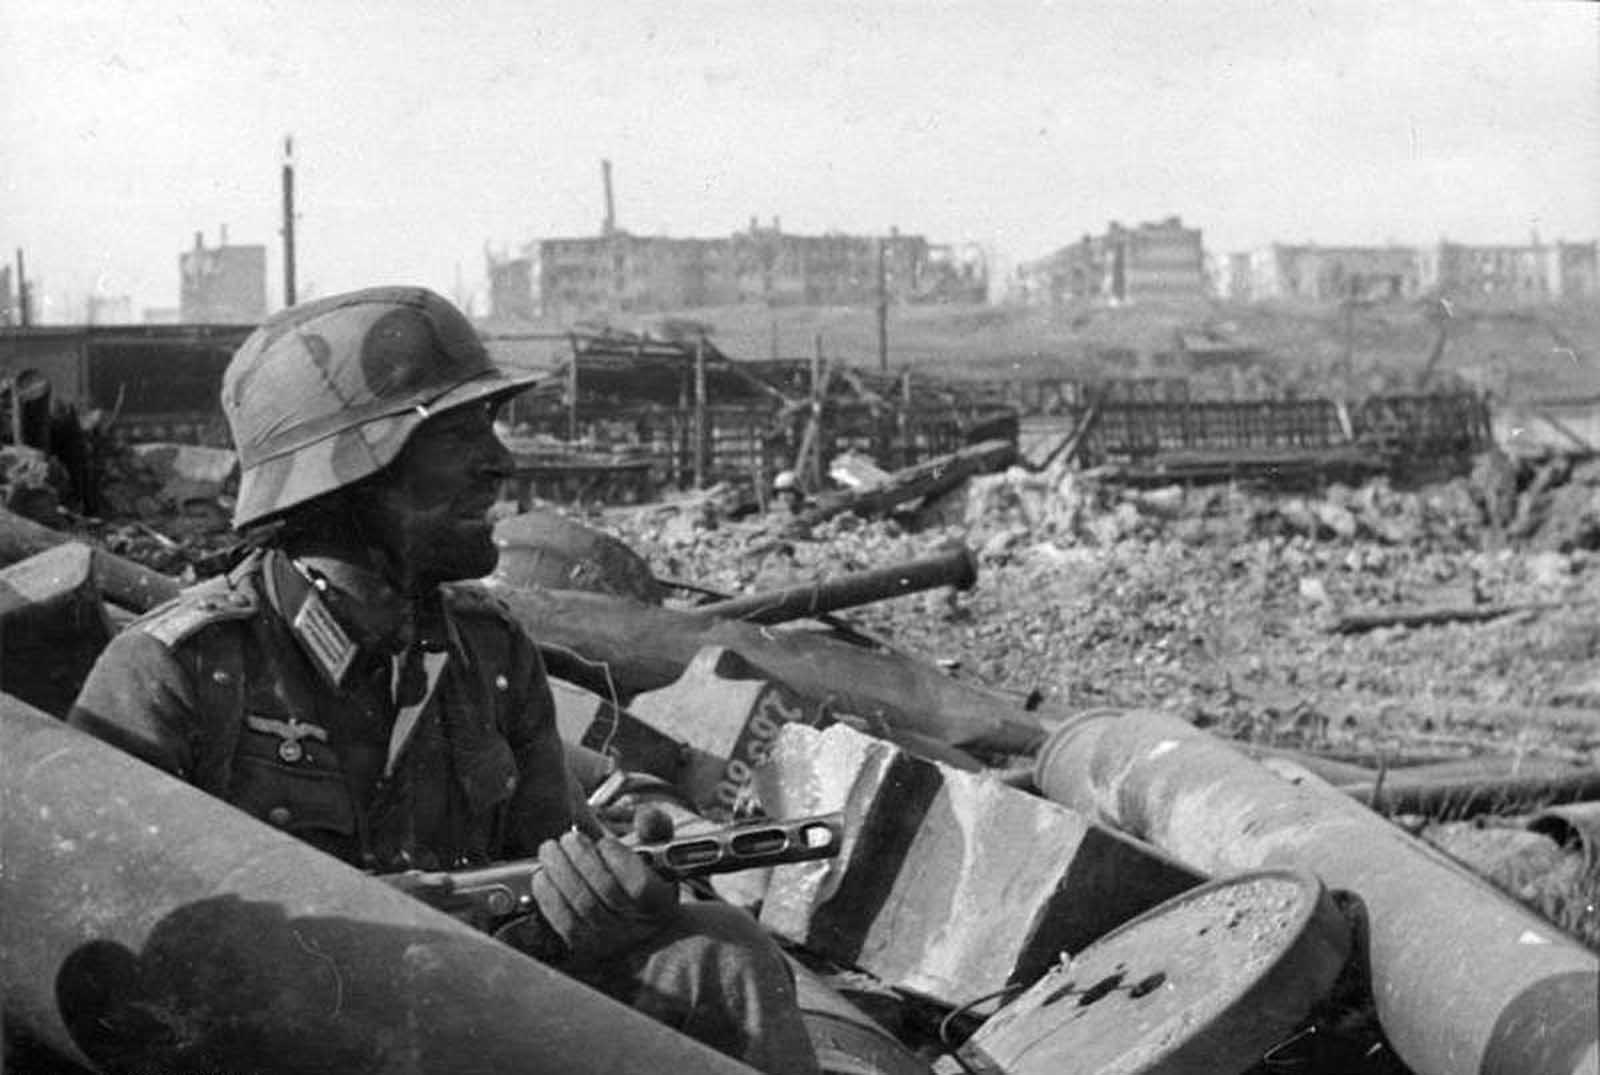 A German soldier with a machine gun during the Battle of Stalingrad, in Spring of 1942.